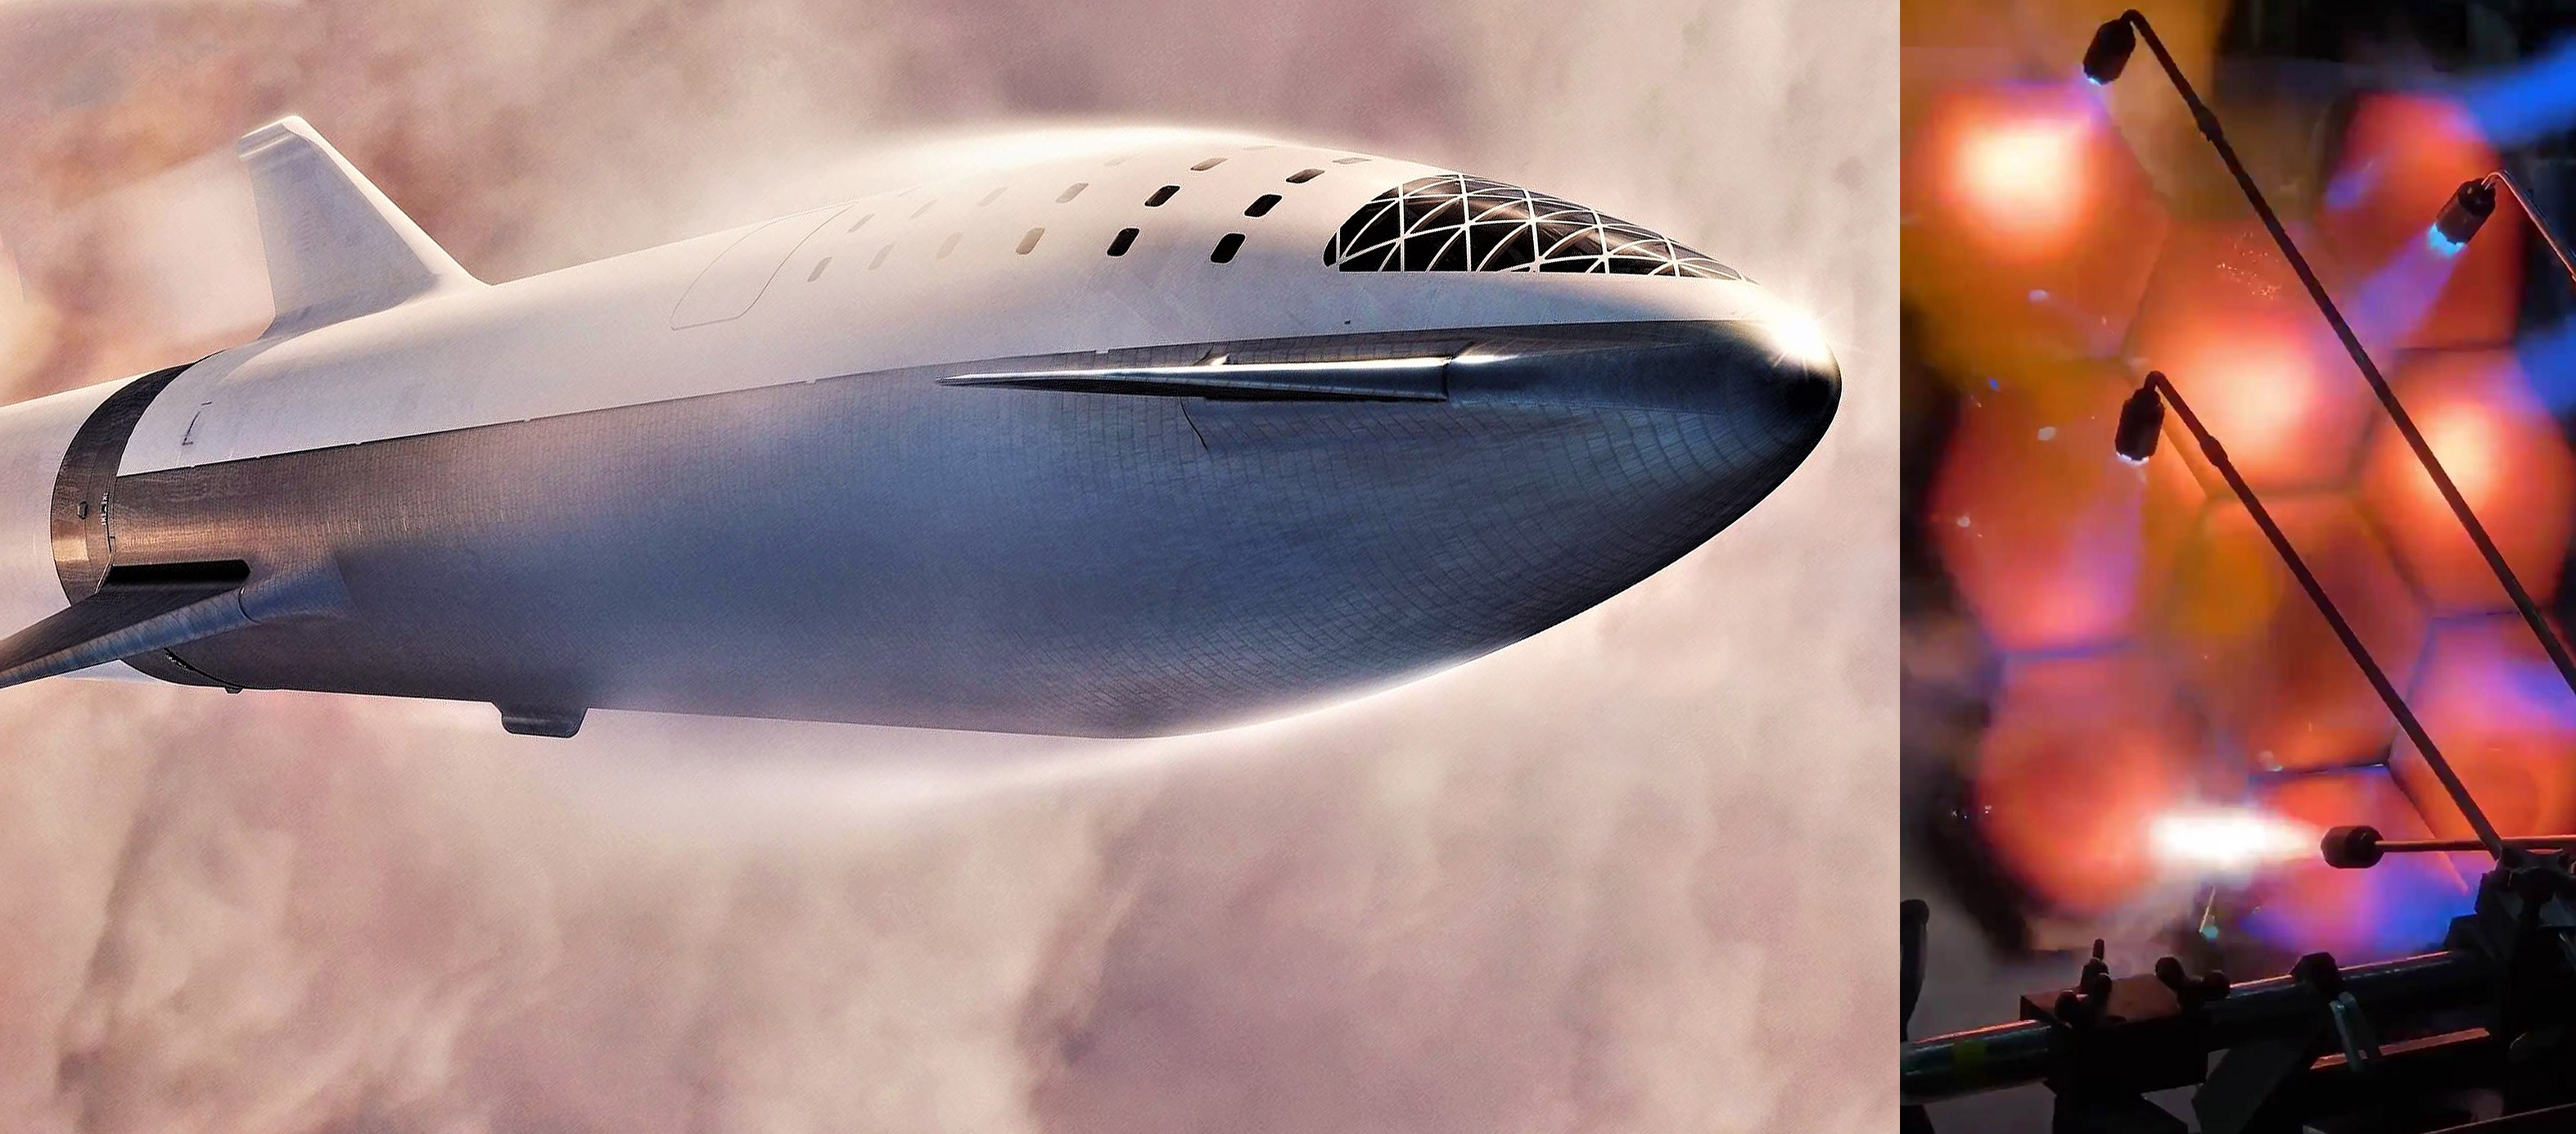 SpaceX's first orbital Starship begins assembly as steel heat shield passes tests